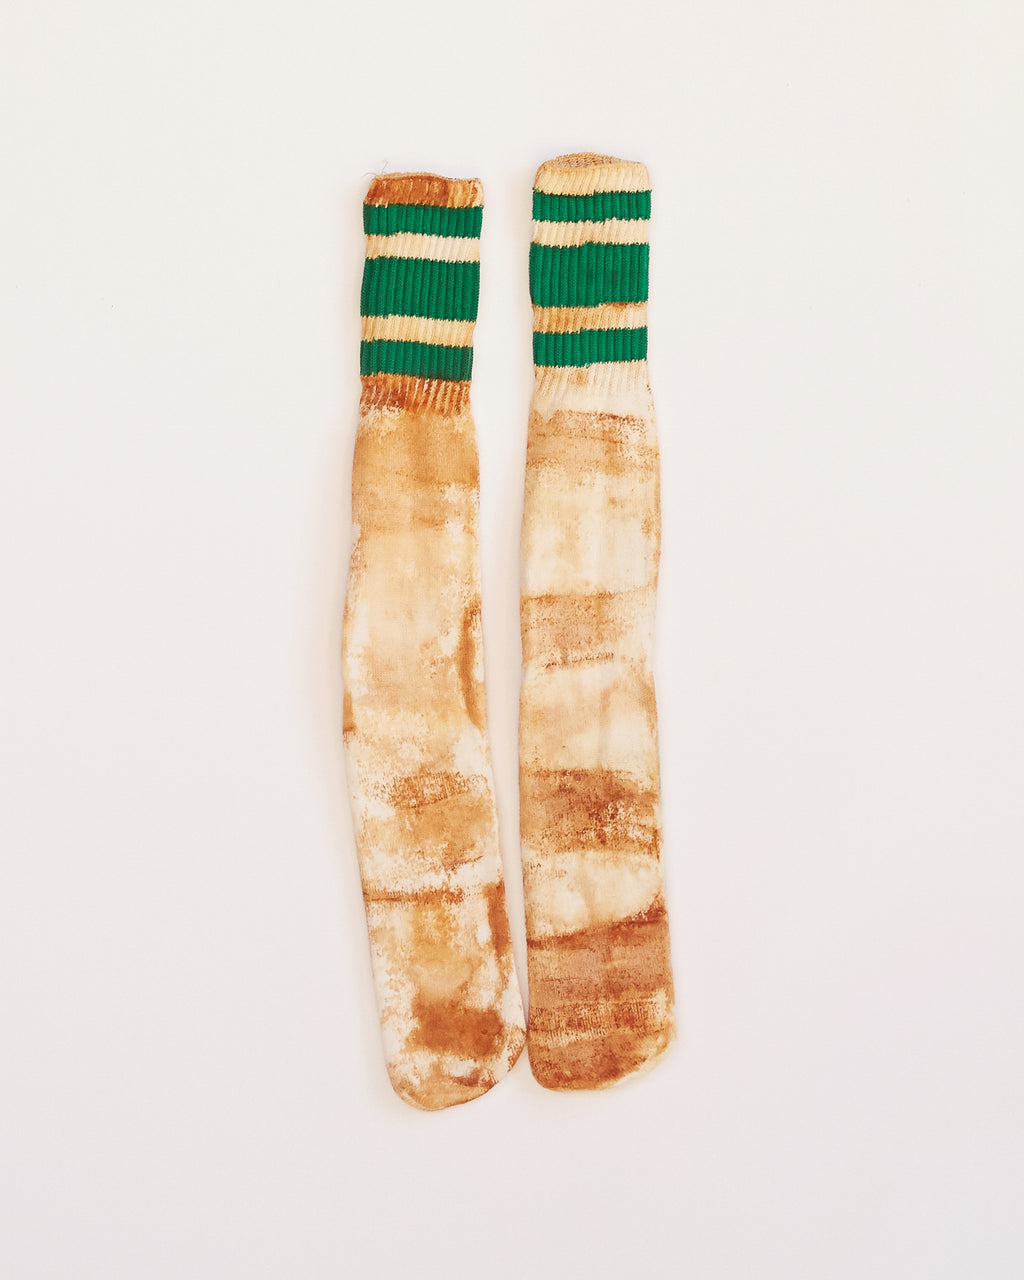 TRAIN YARD RUST DYED GREEN STRIPE SOCKS - ONESIZE